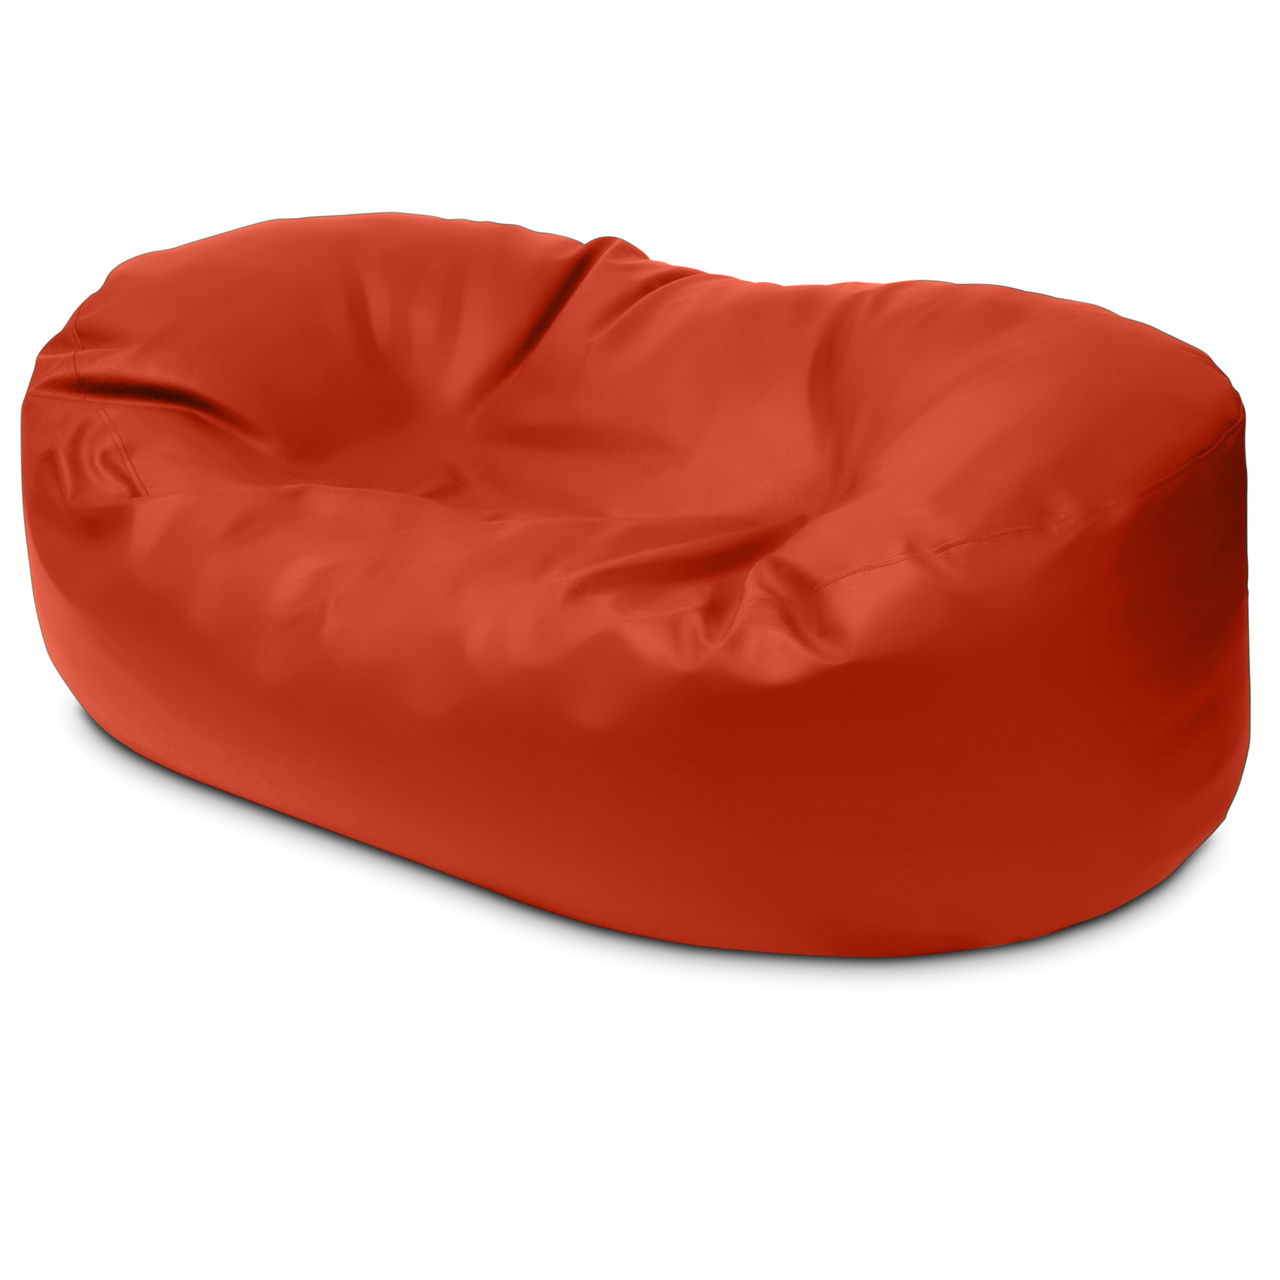 Classic 2m Couch in paprika